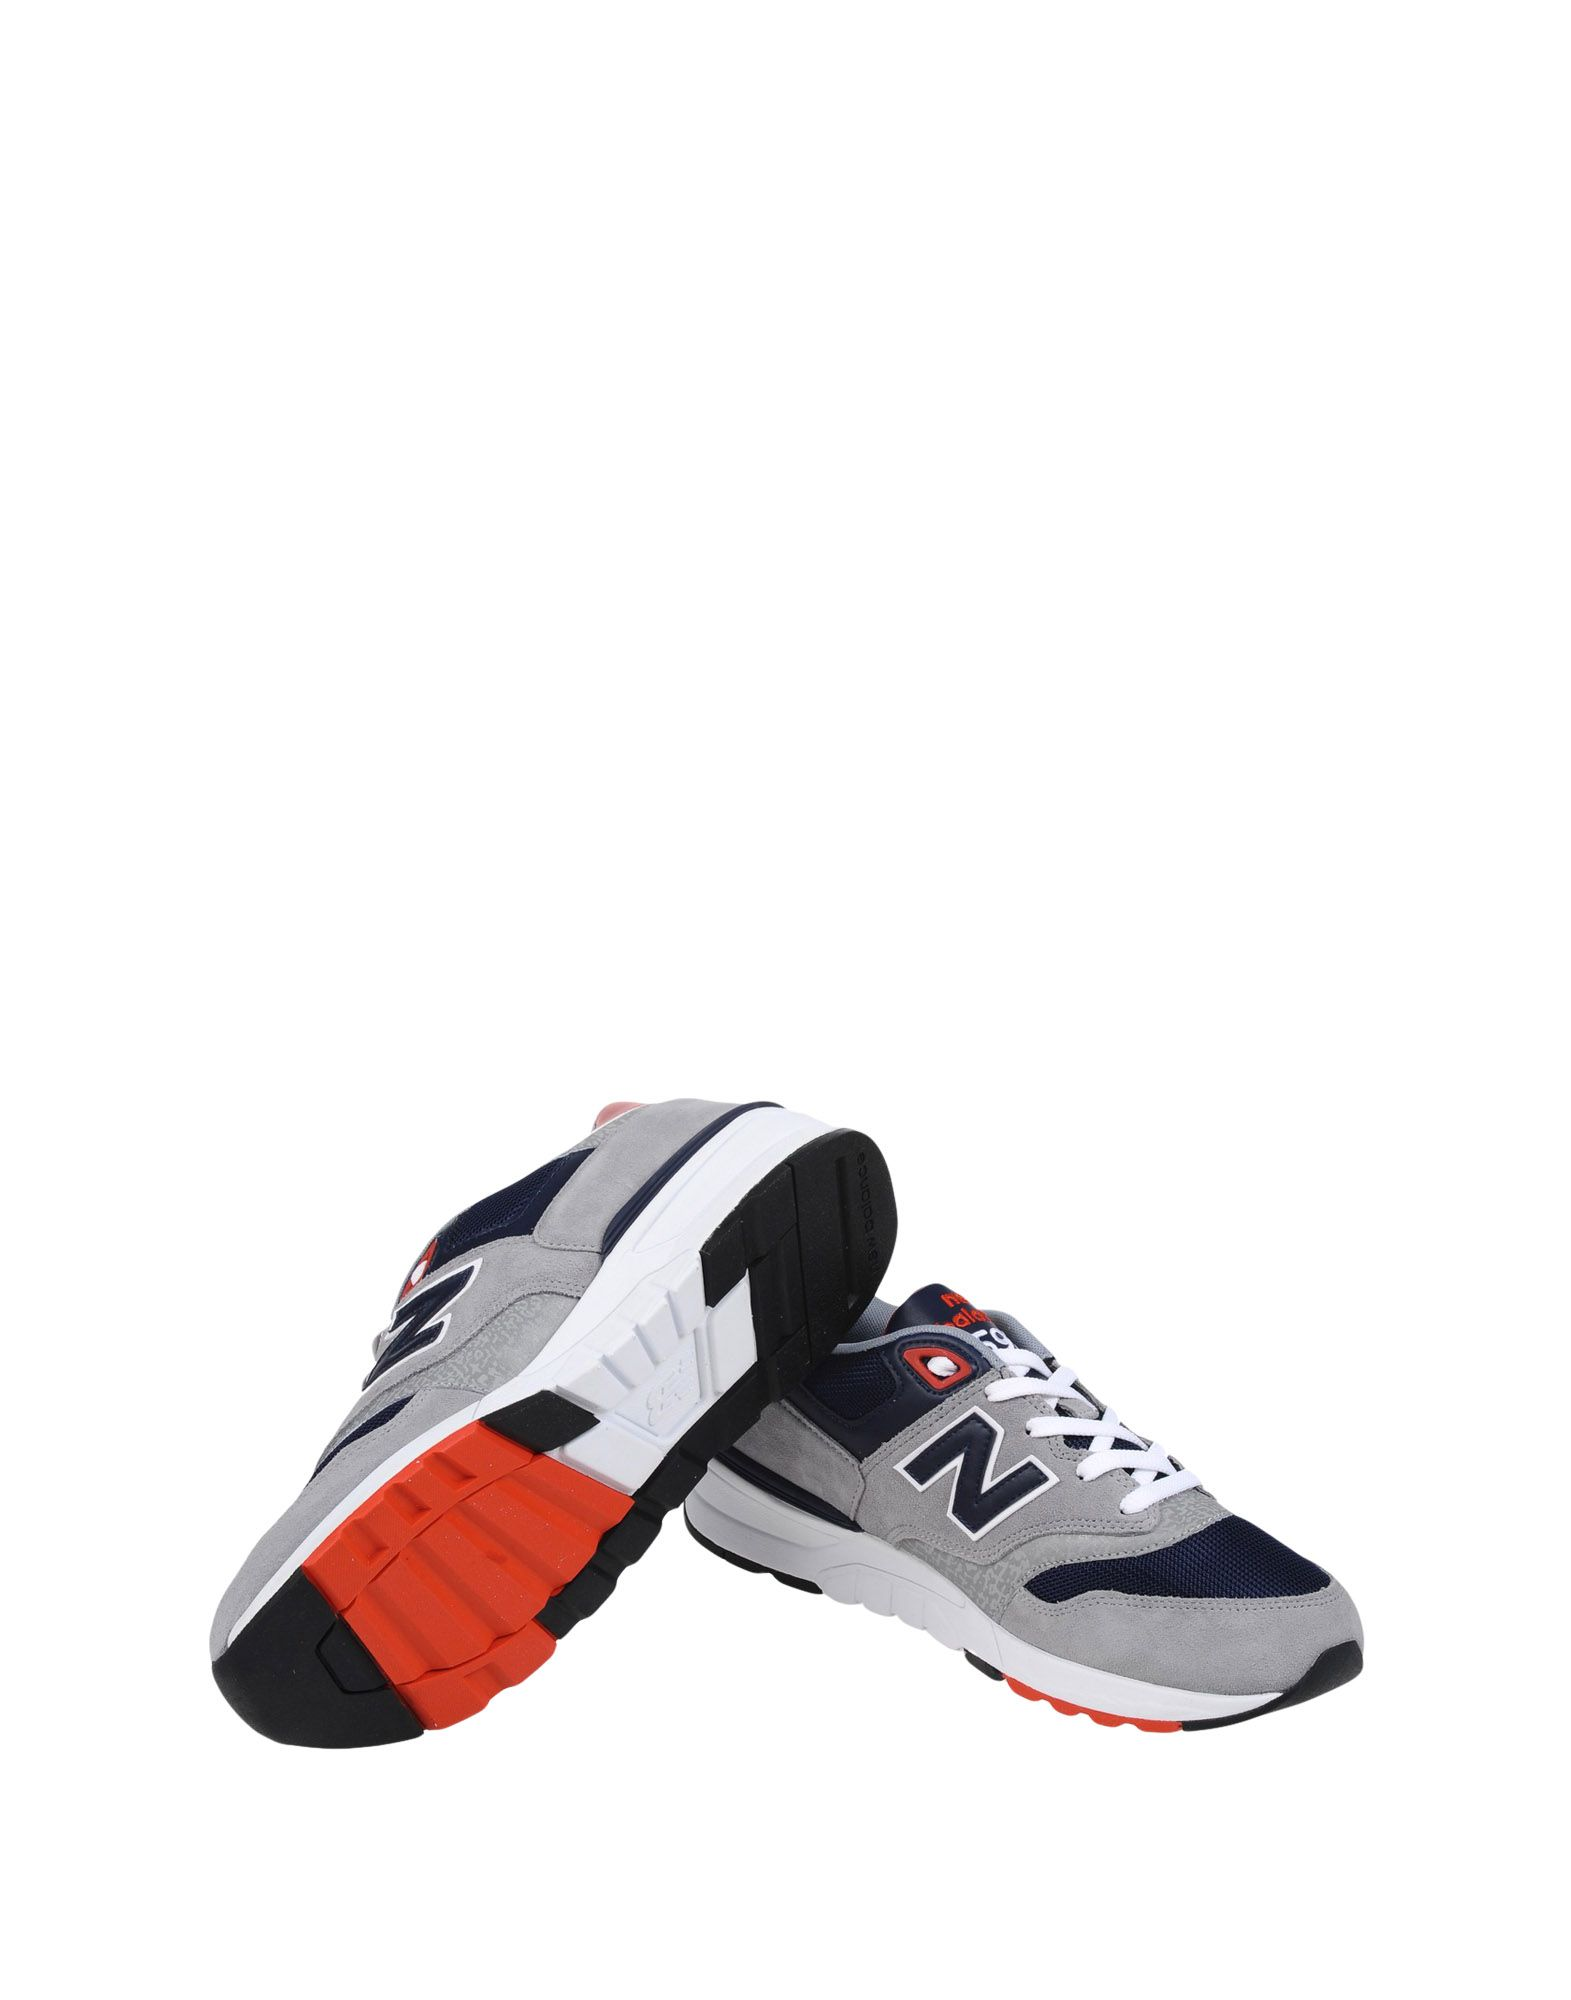 Sneakers New Balance 597 Classic Running - Homme - Sneakers New Balance sur